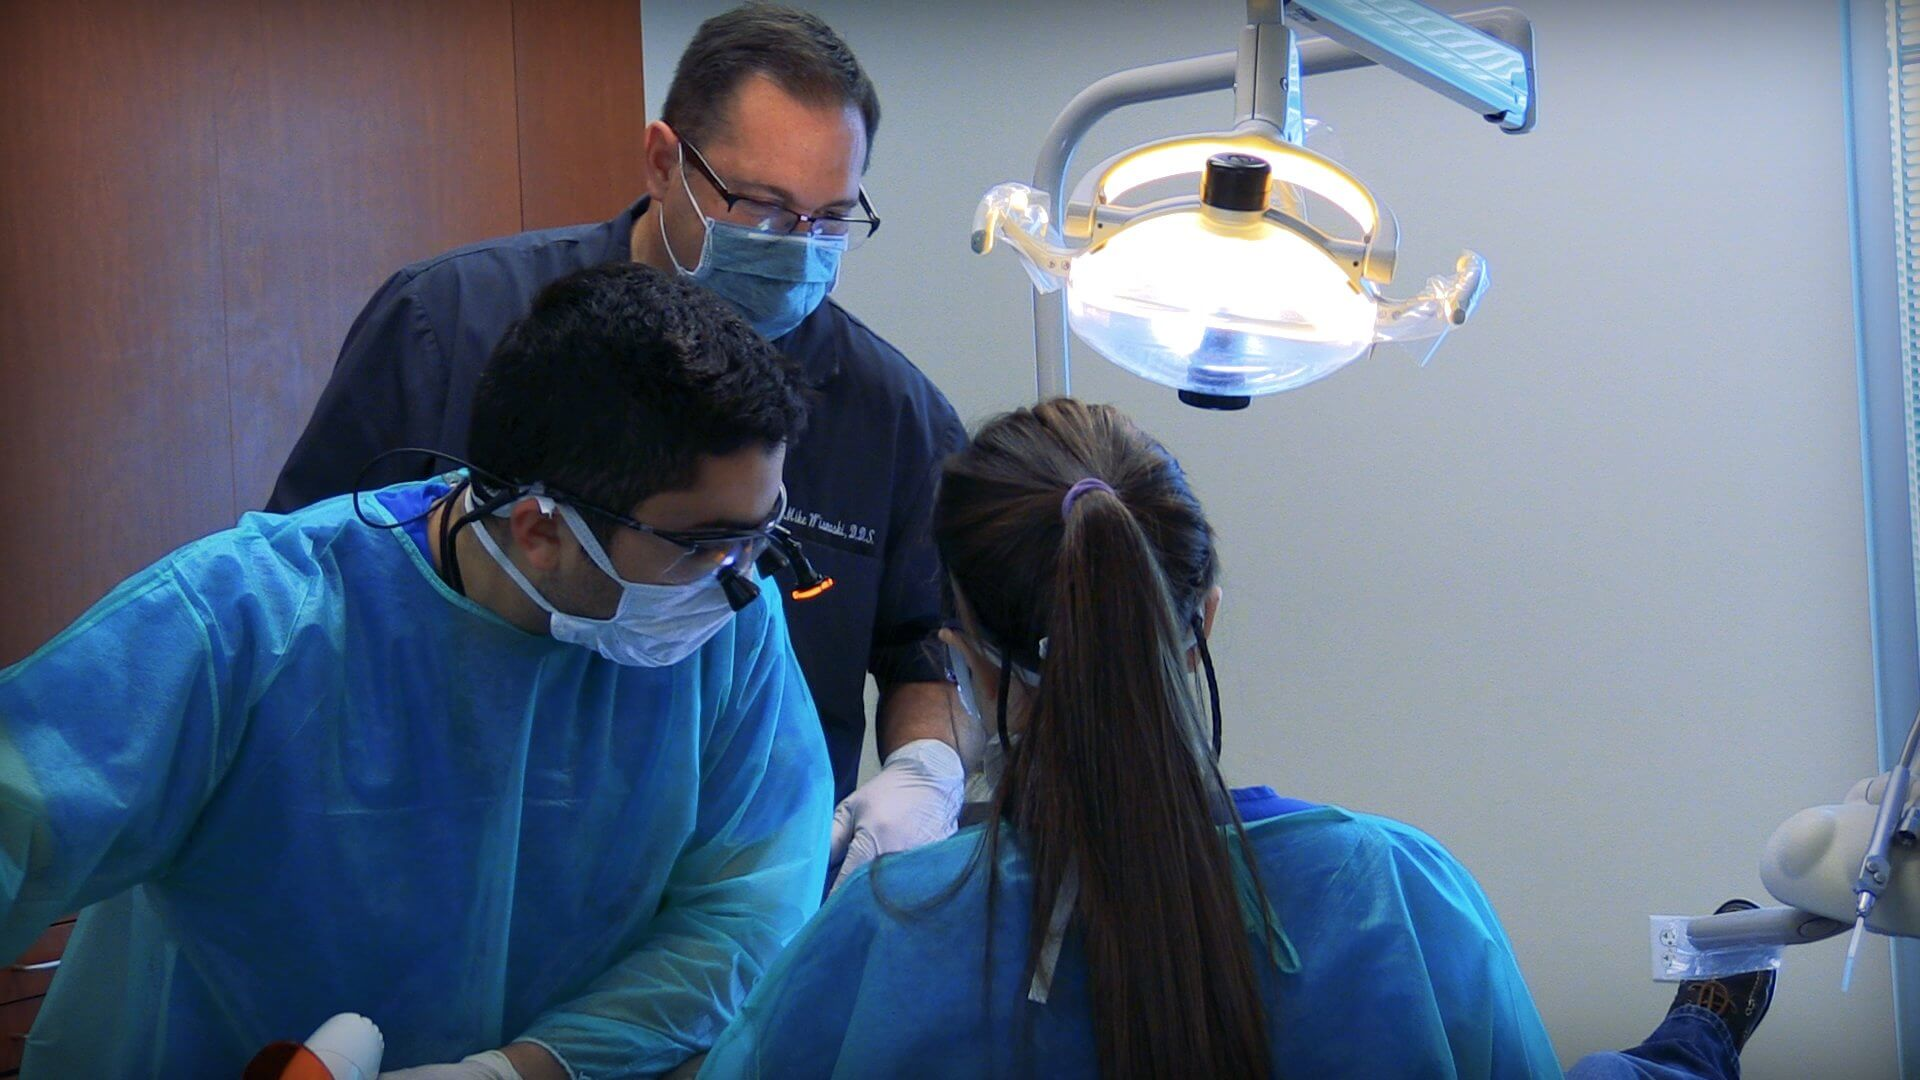 Students from the UTHealth School of Dentistry provide dental care for patients at the clinic.